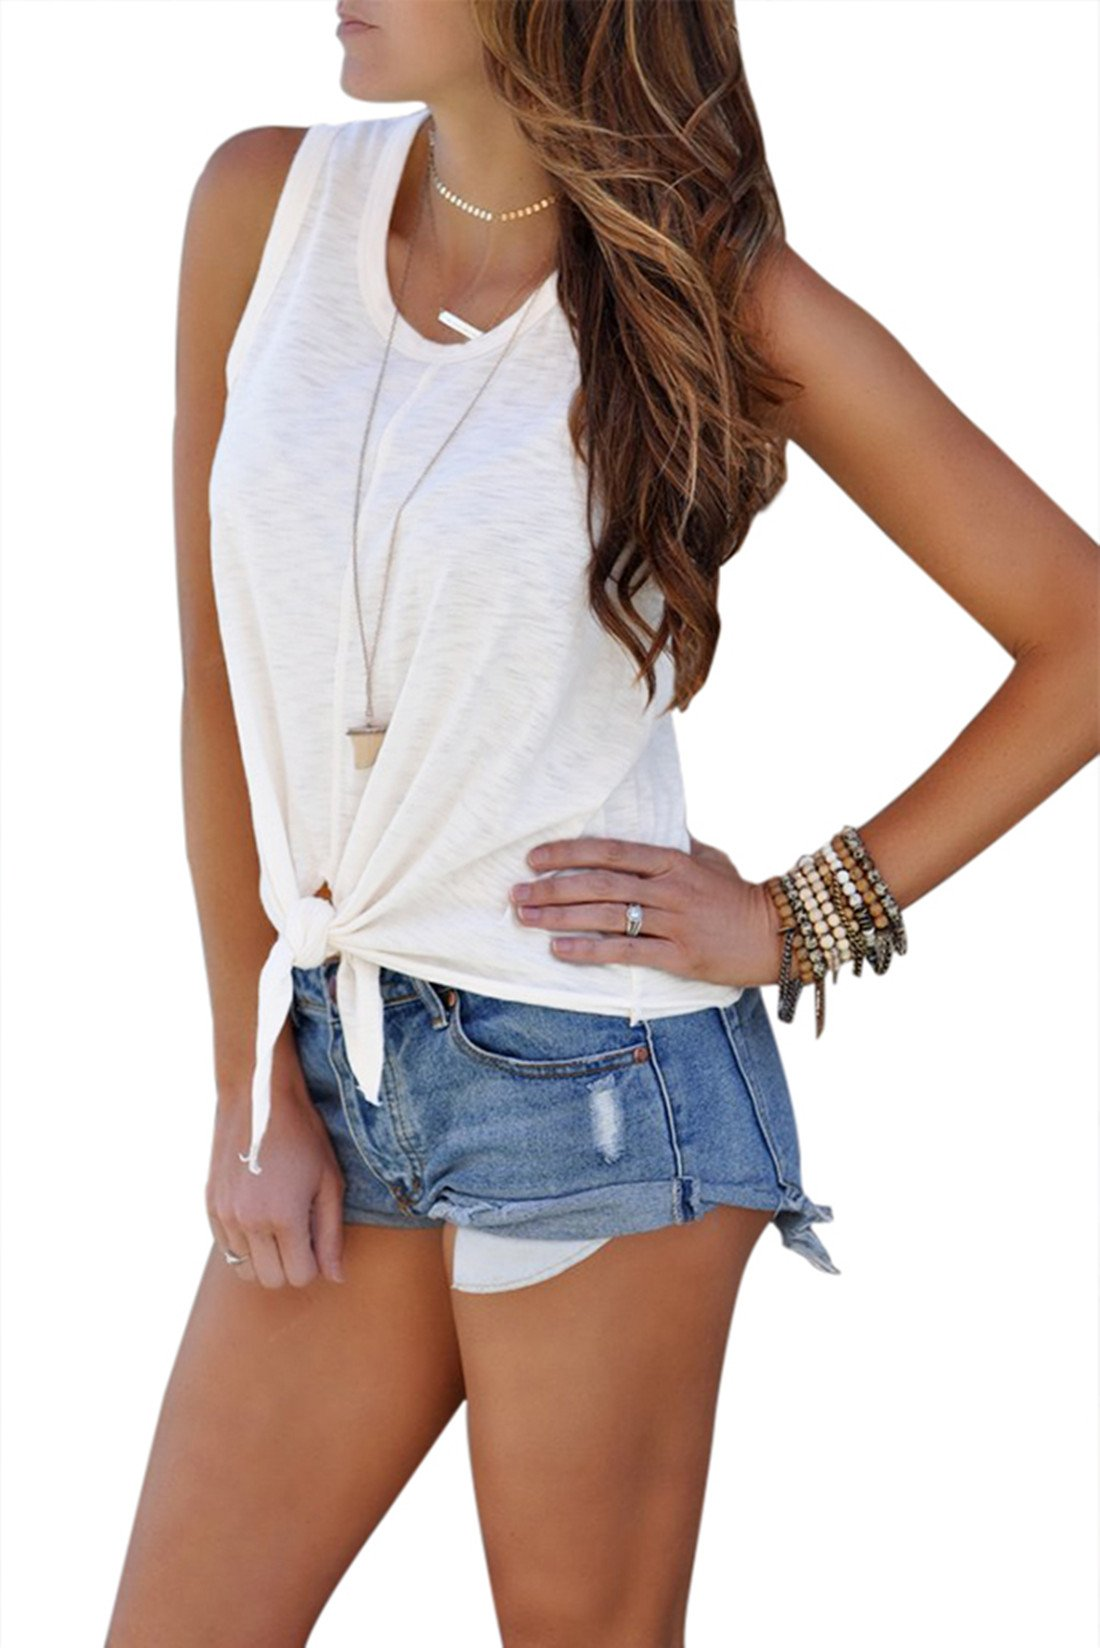 Astylish Womens Summer Loose Ladies Sleeveless Front Tie Tank Tops White X-Large 16 18